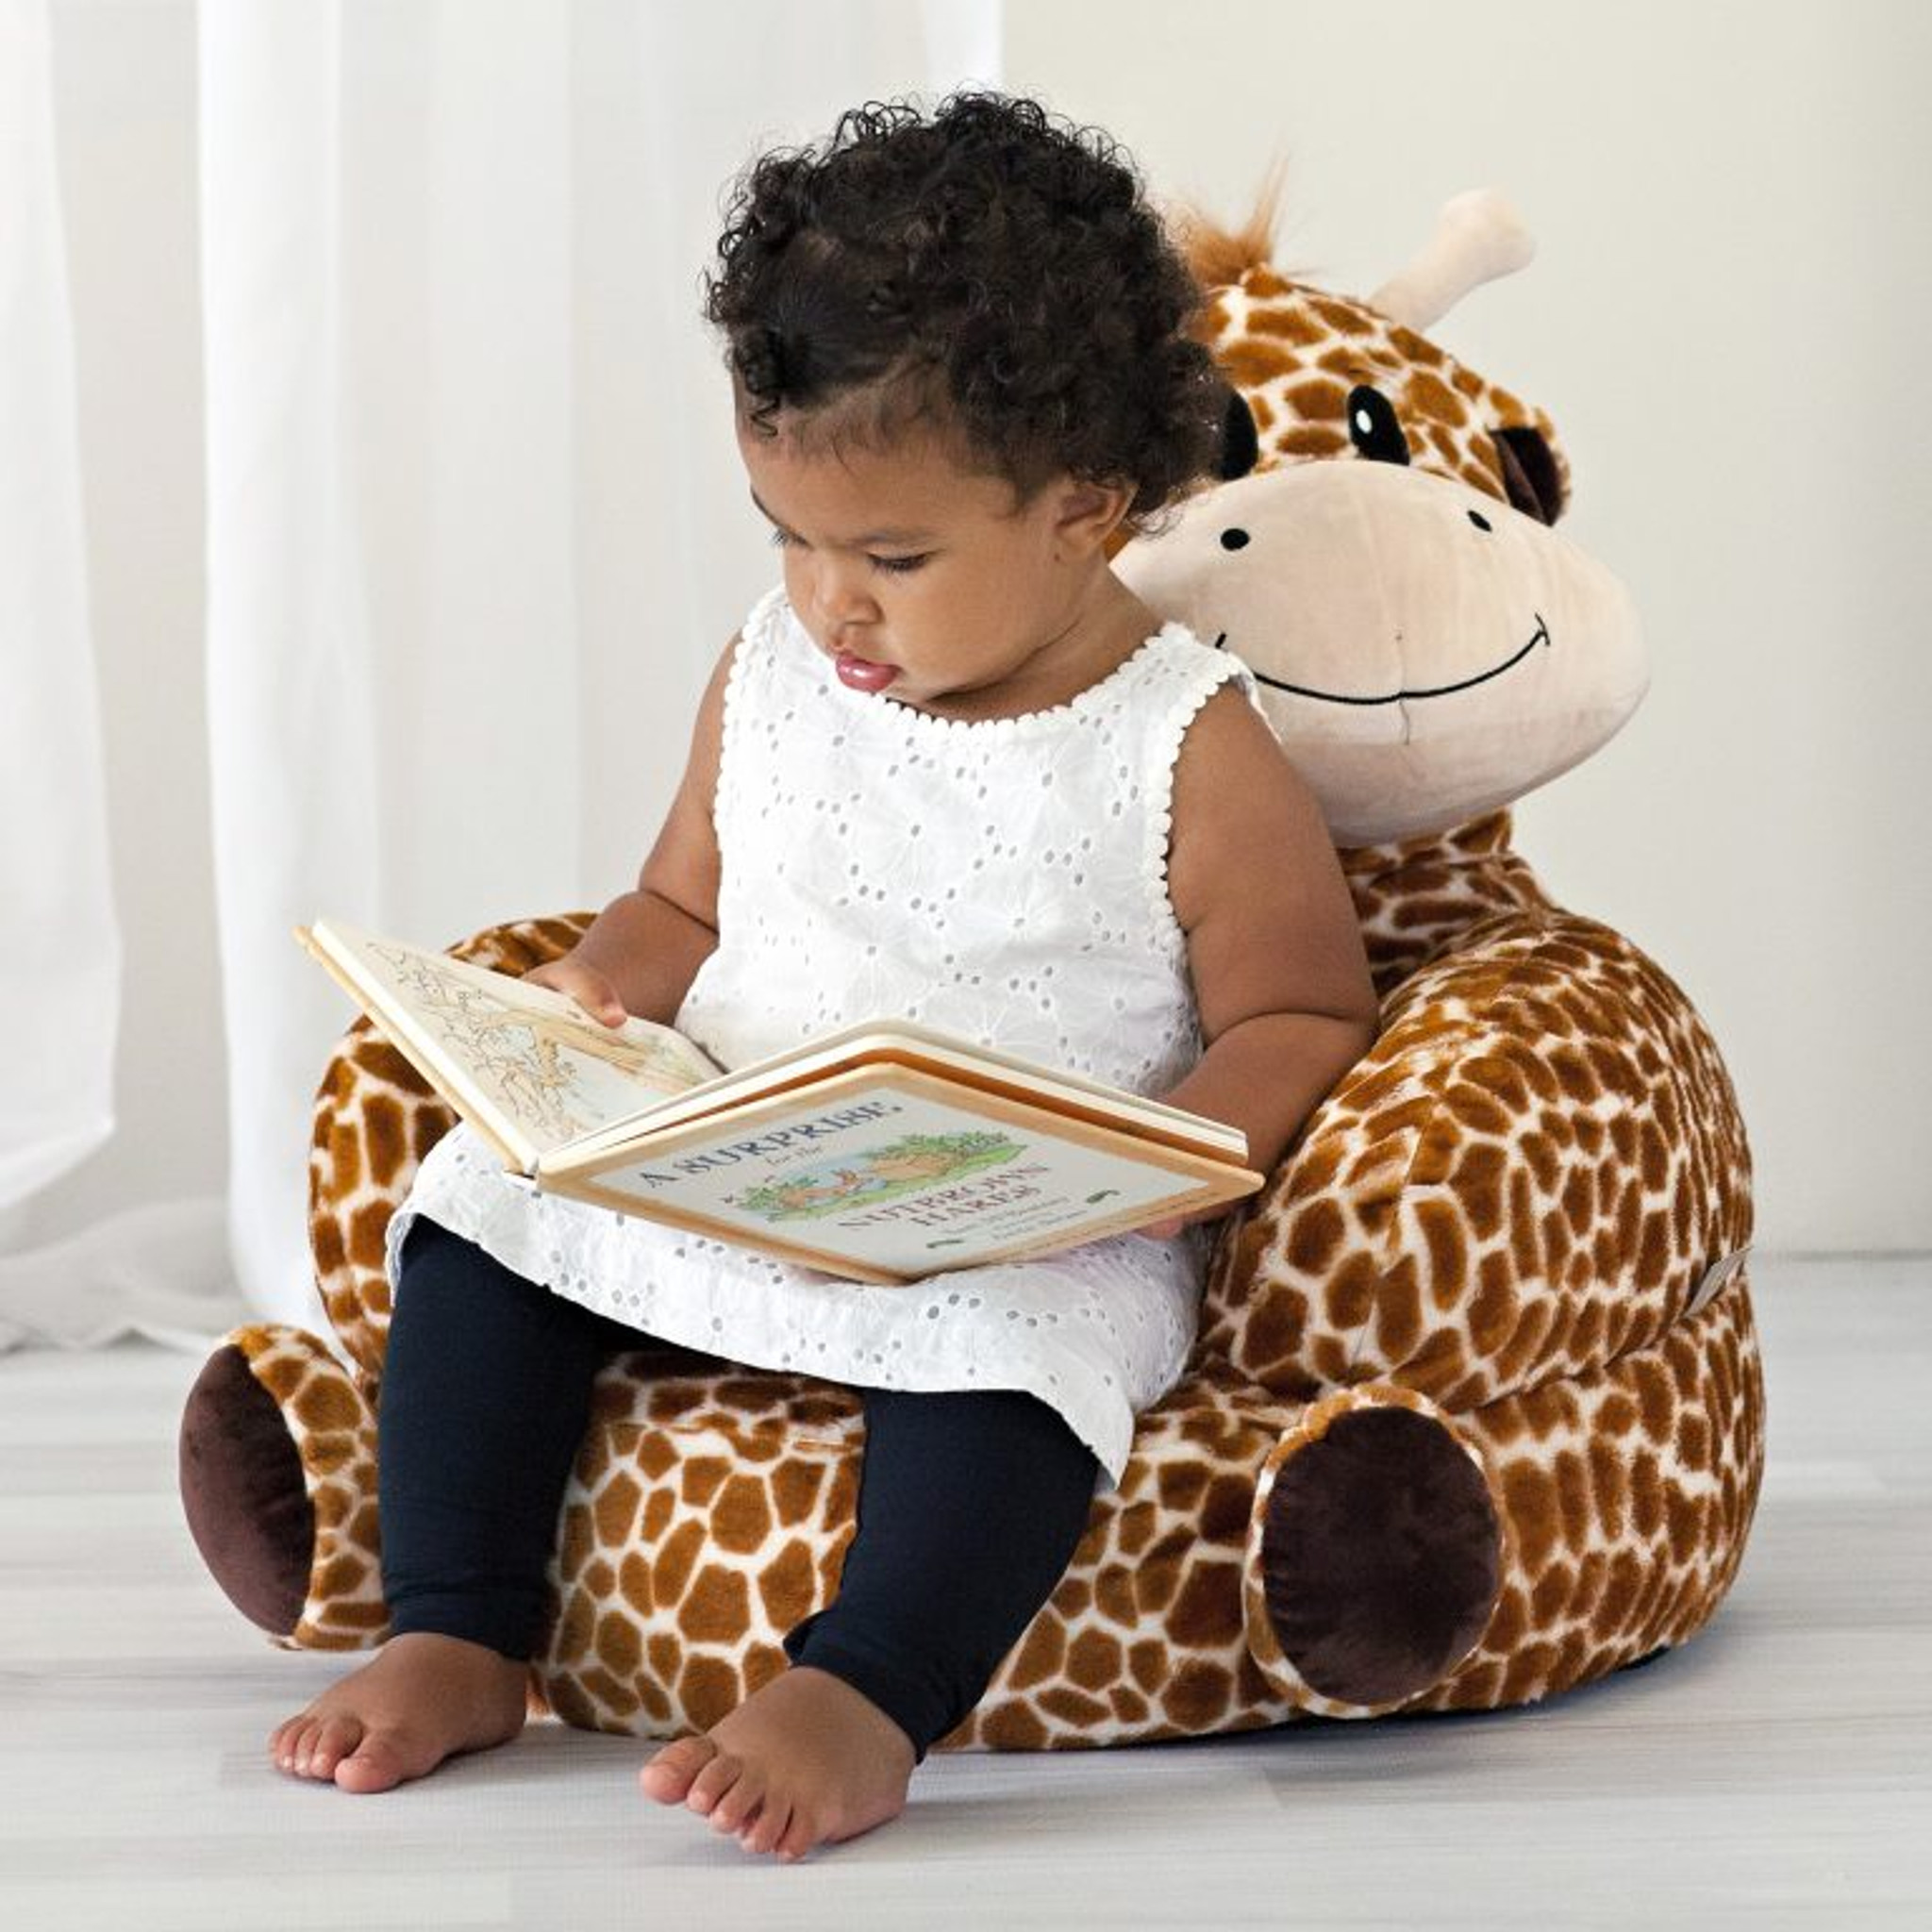 Giraffe Toddler Chair  sc 1 st  Stuff 4 Multiples & Giraffe Toddler Chair - Stuff 4 Multiples